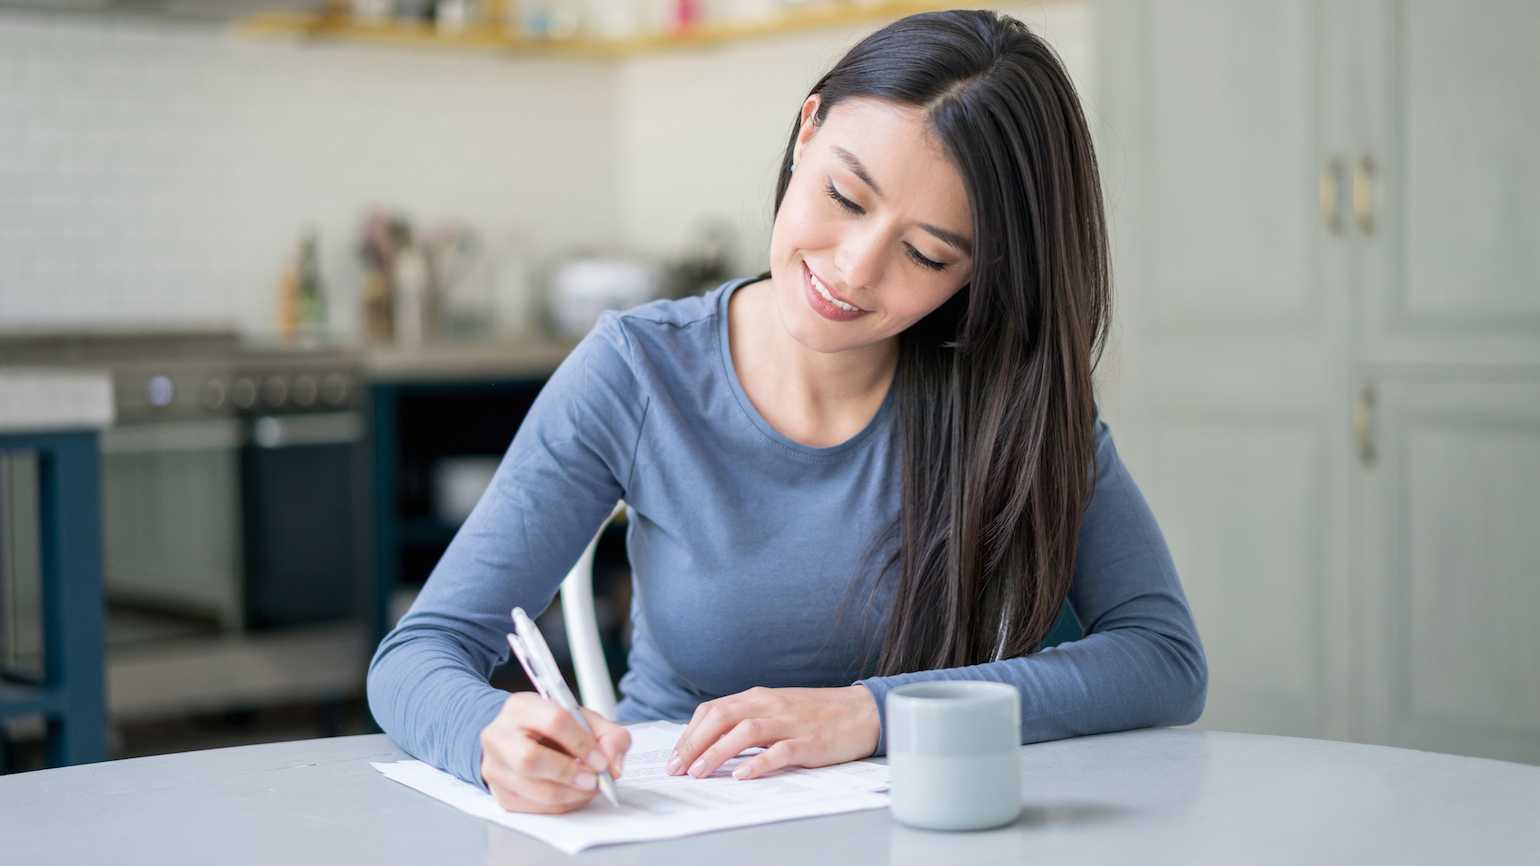 Writing a note is an act of kindness